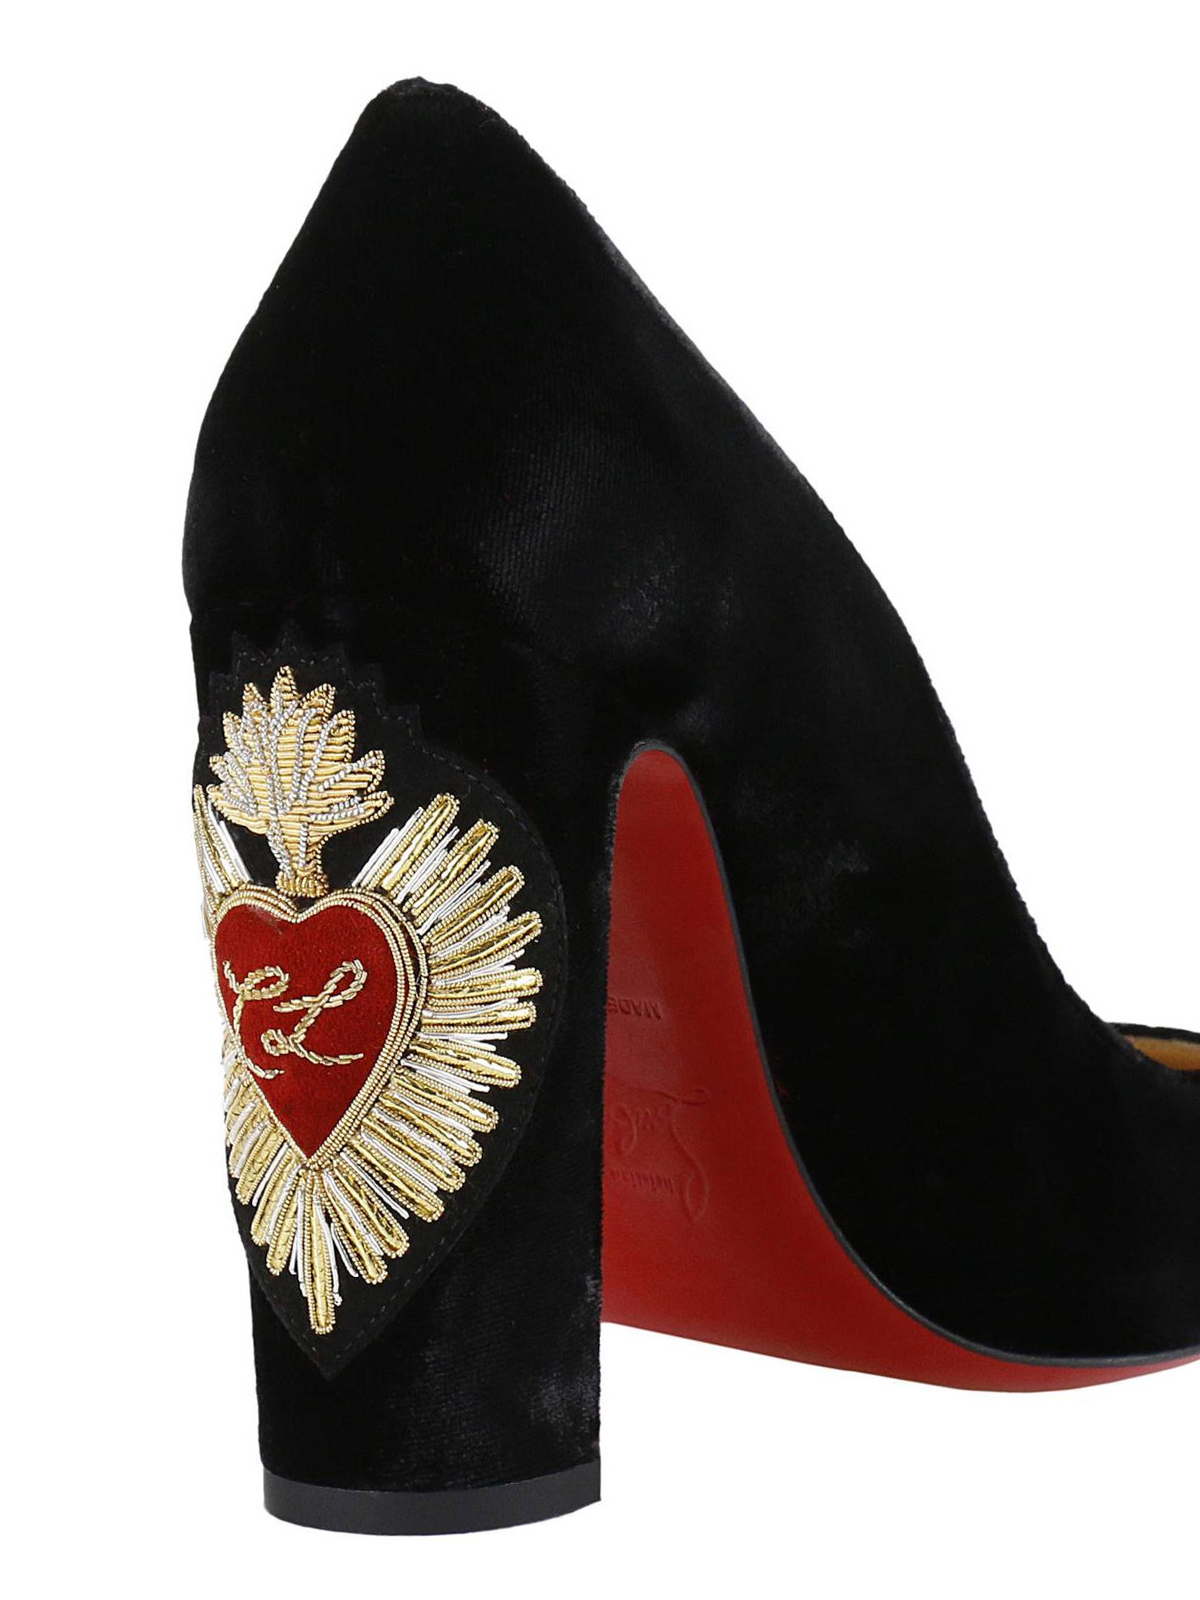 best service 88ba5 d8419 Christian Louboutin - Cadrilla Corazon embroidered shoes ...